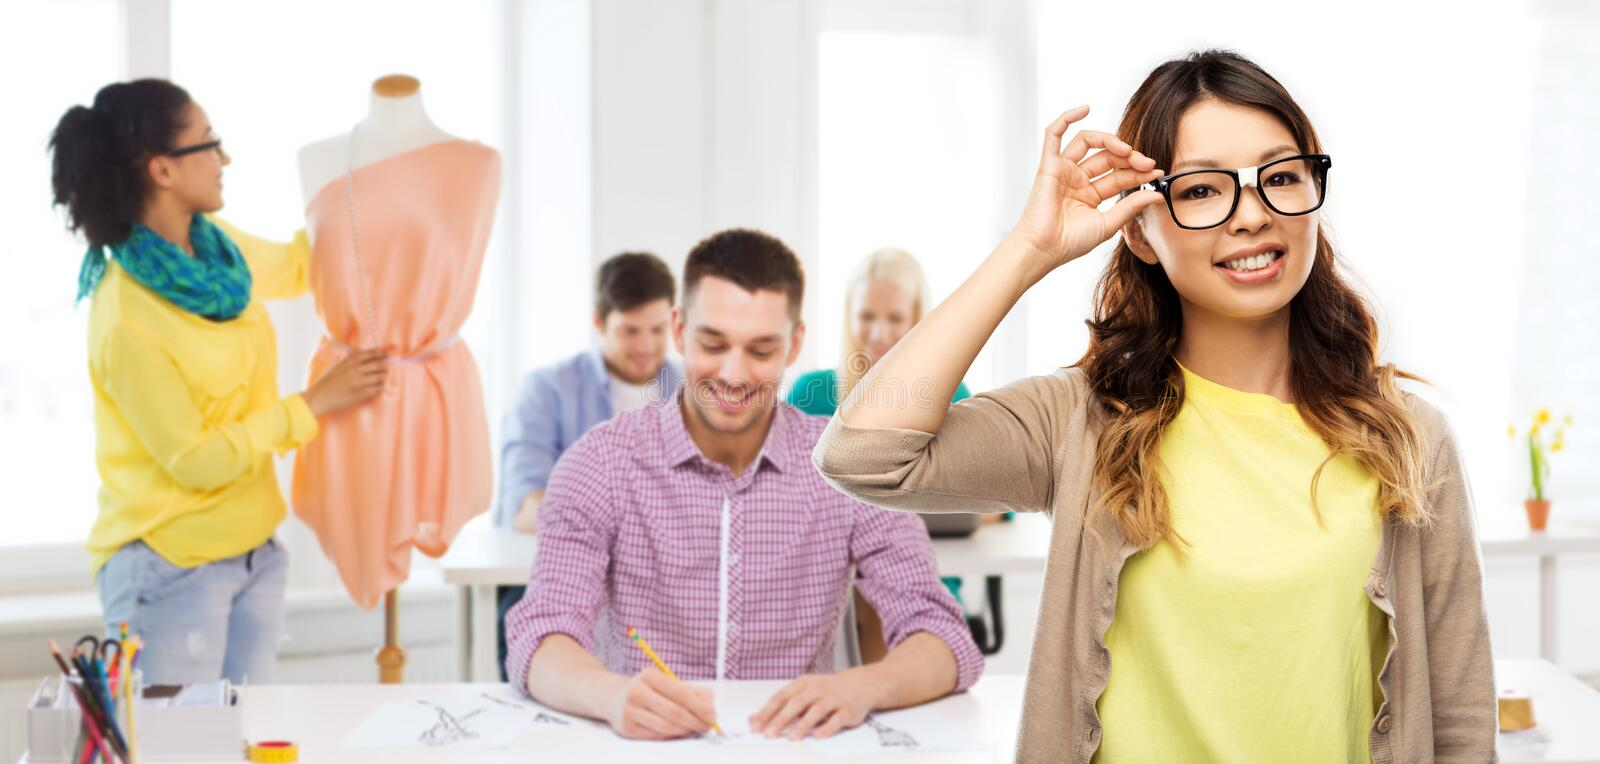 Happy asian woman in glasses or student stock image